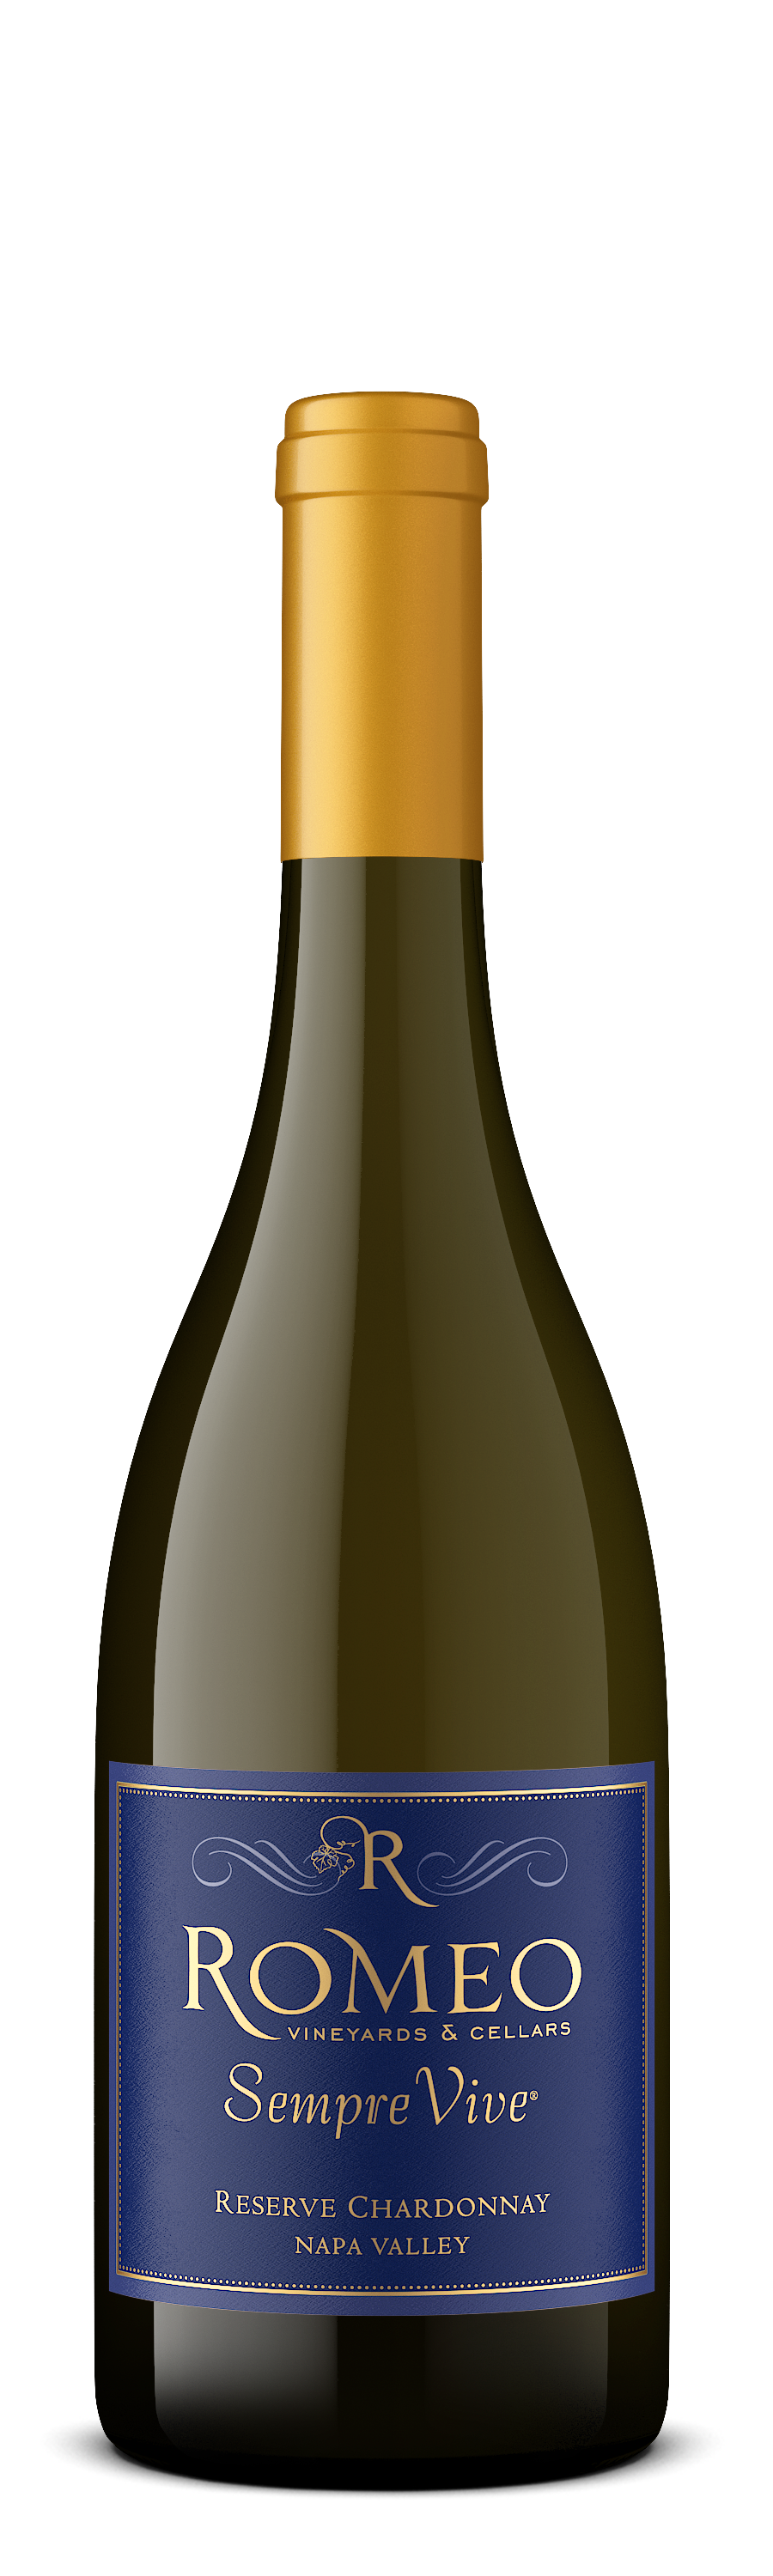 Product Image for 2018 Chardonnay Reserve